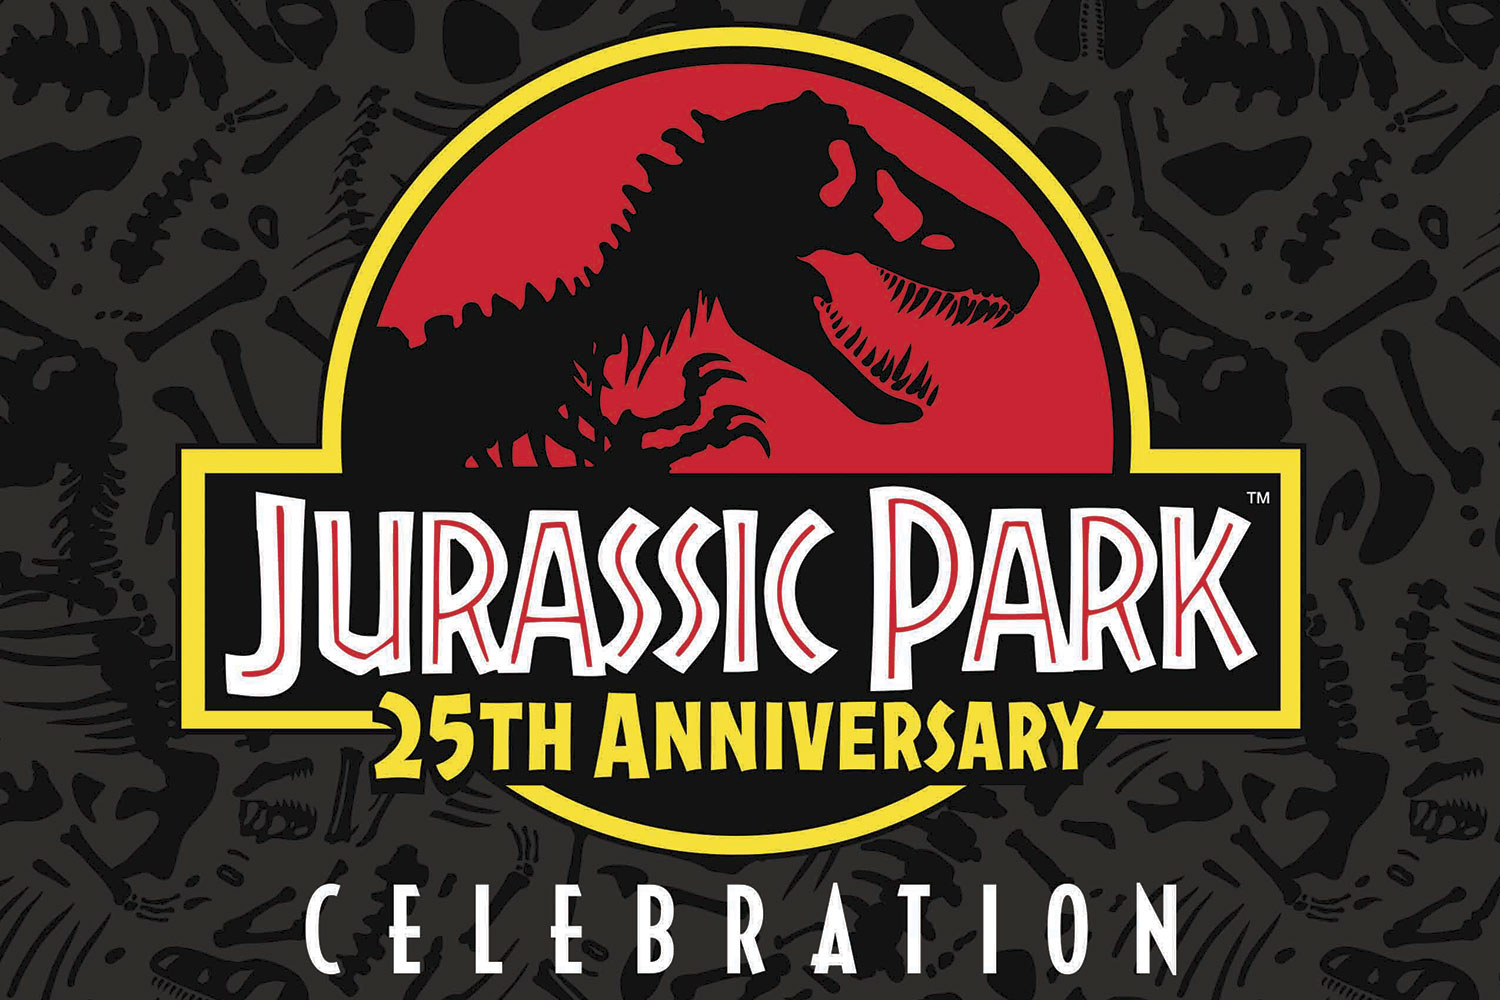 Jurassic Park 25th Anniversary Celebration at Universal Studios Hollywood